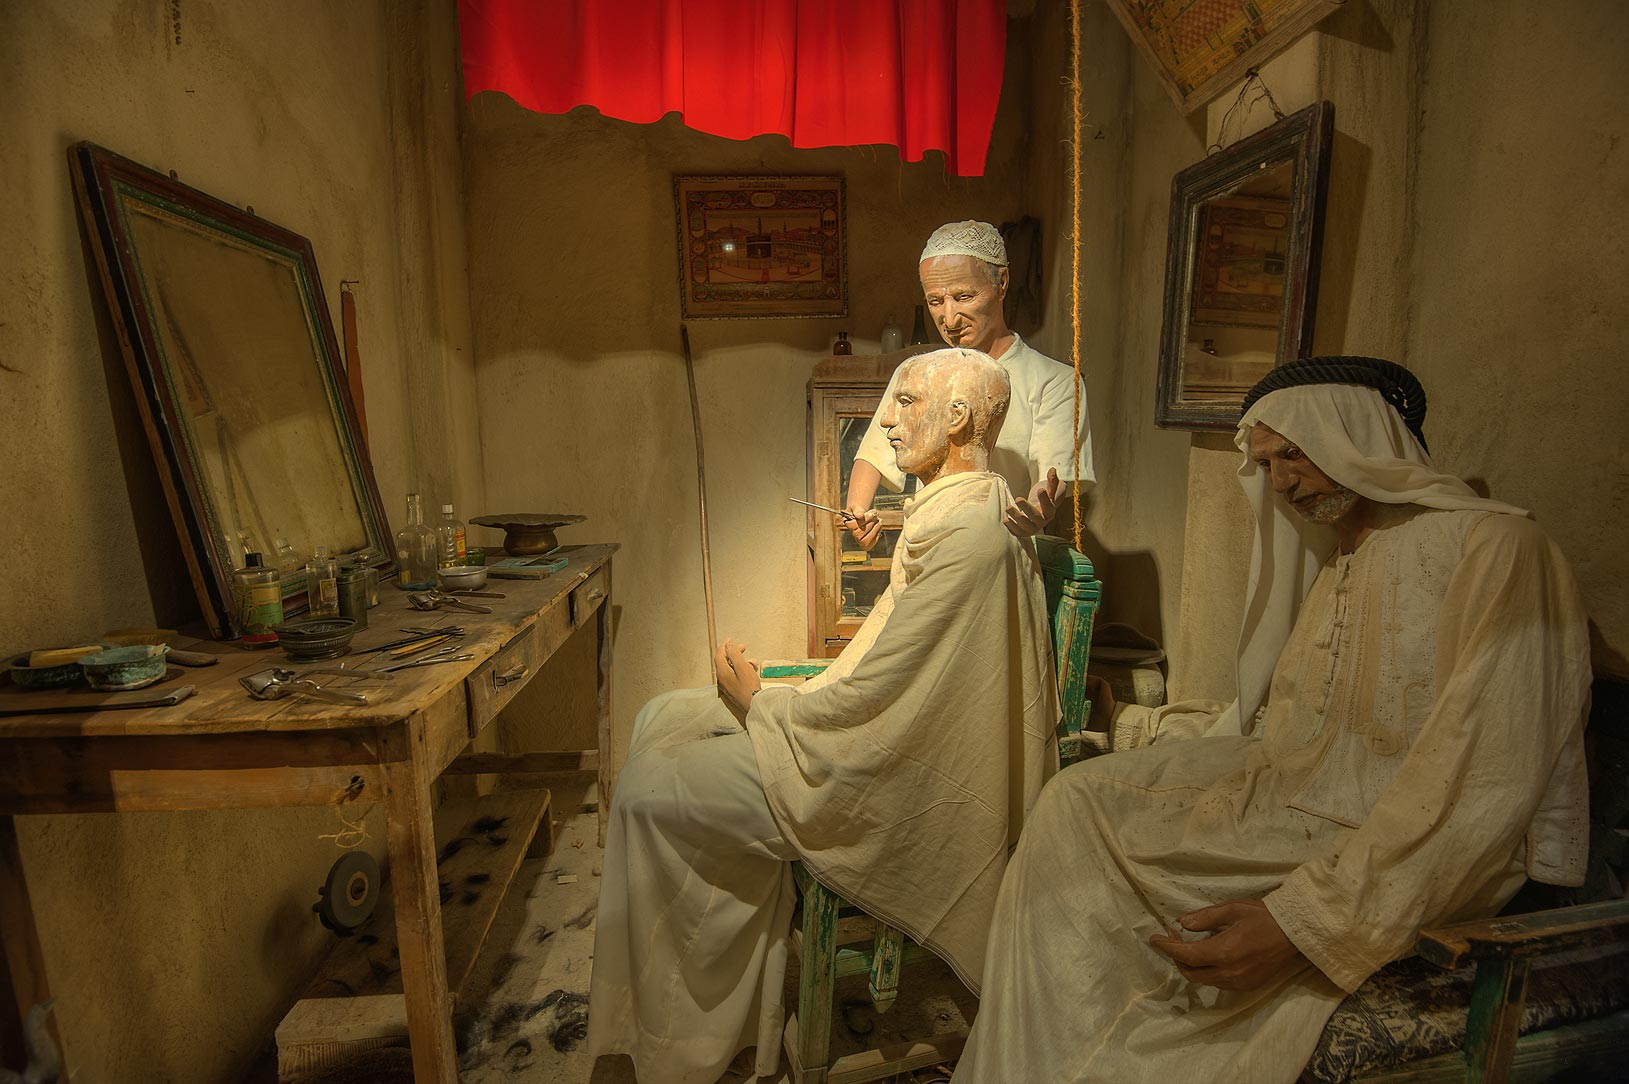 Exhibition of old lifestyle in Bahrain National Museum. Manama, Bahrain